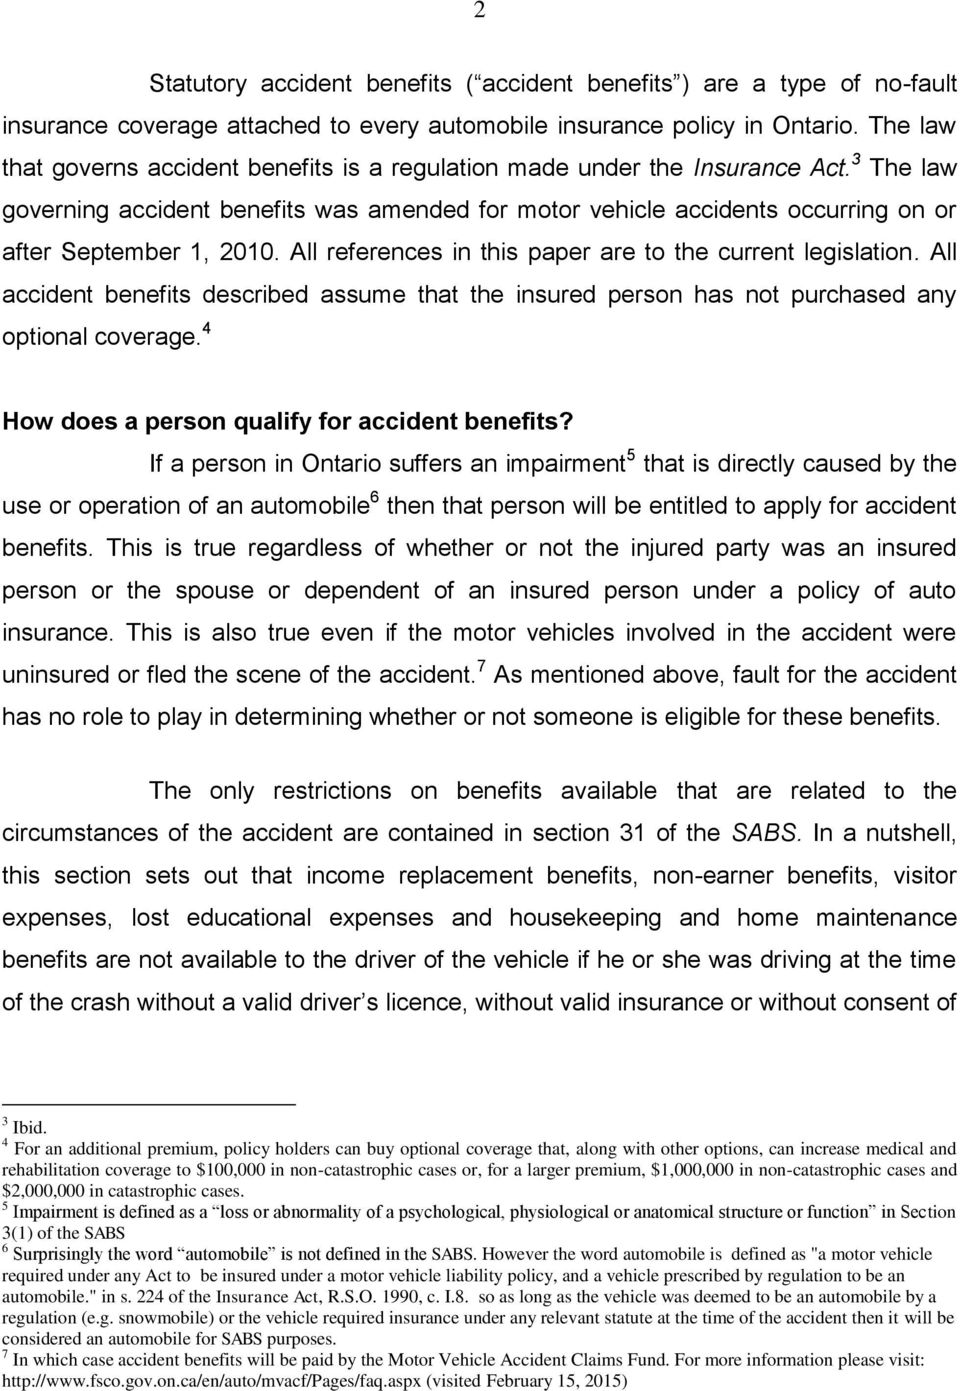 3 The law governing accident benefits was amended for motor vehicle accidents occurring on or after September 1, 2010. All references in this paper are to the current legislation.